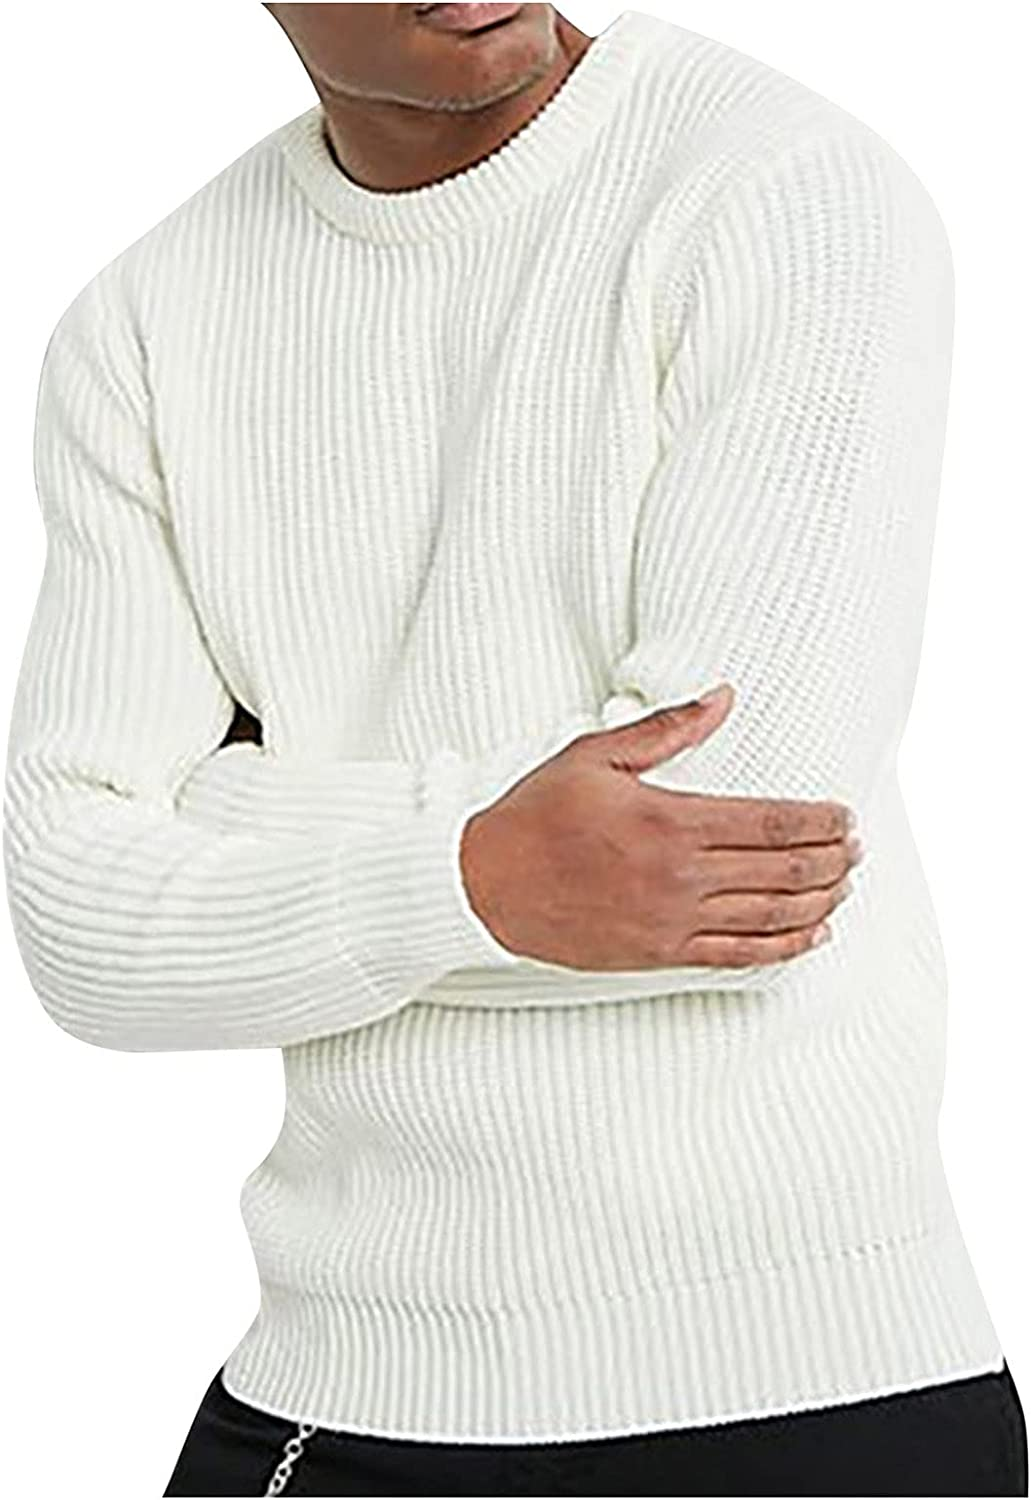 Men's Solid Crewneck Pullover Ribbed Casual Knitted Turtleneck Long Sleeve Autumn Winter Sweater Blouse Top